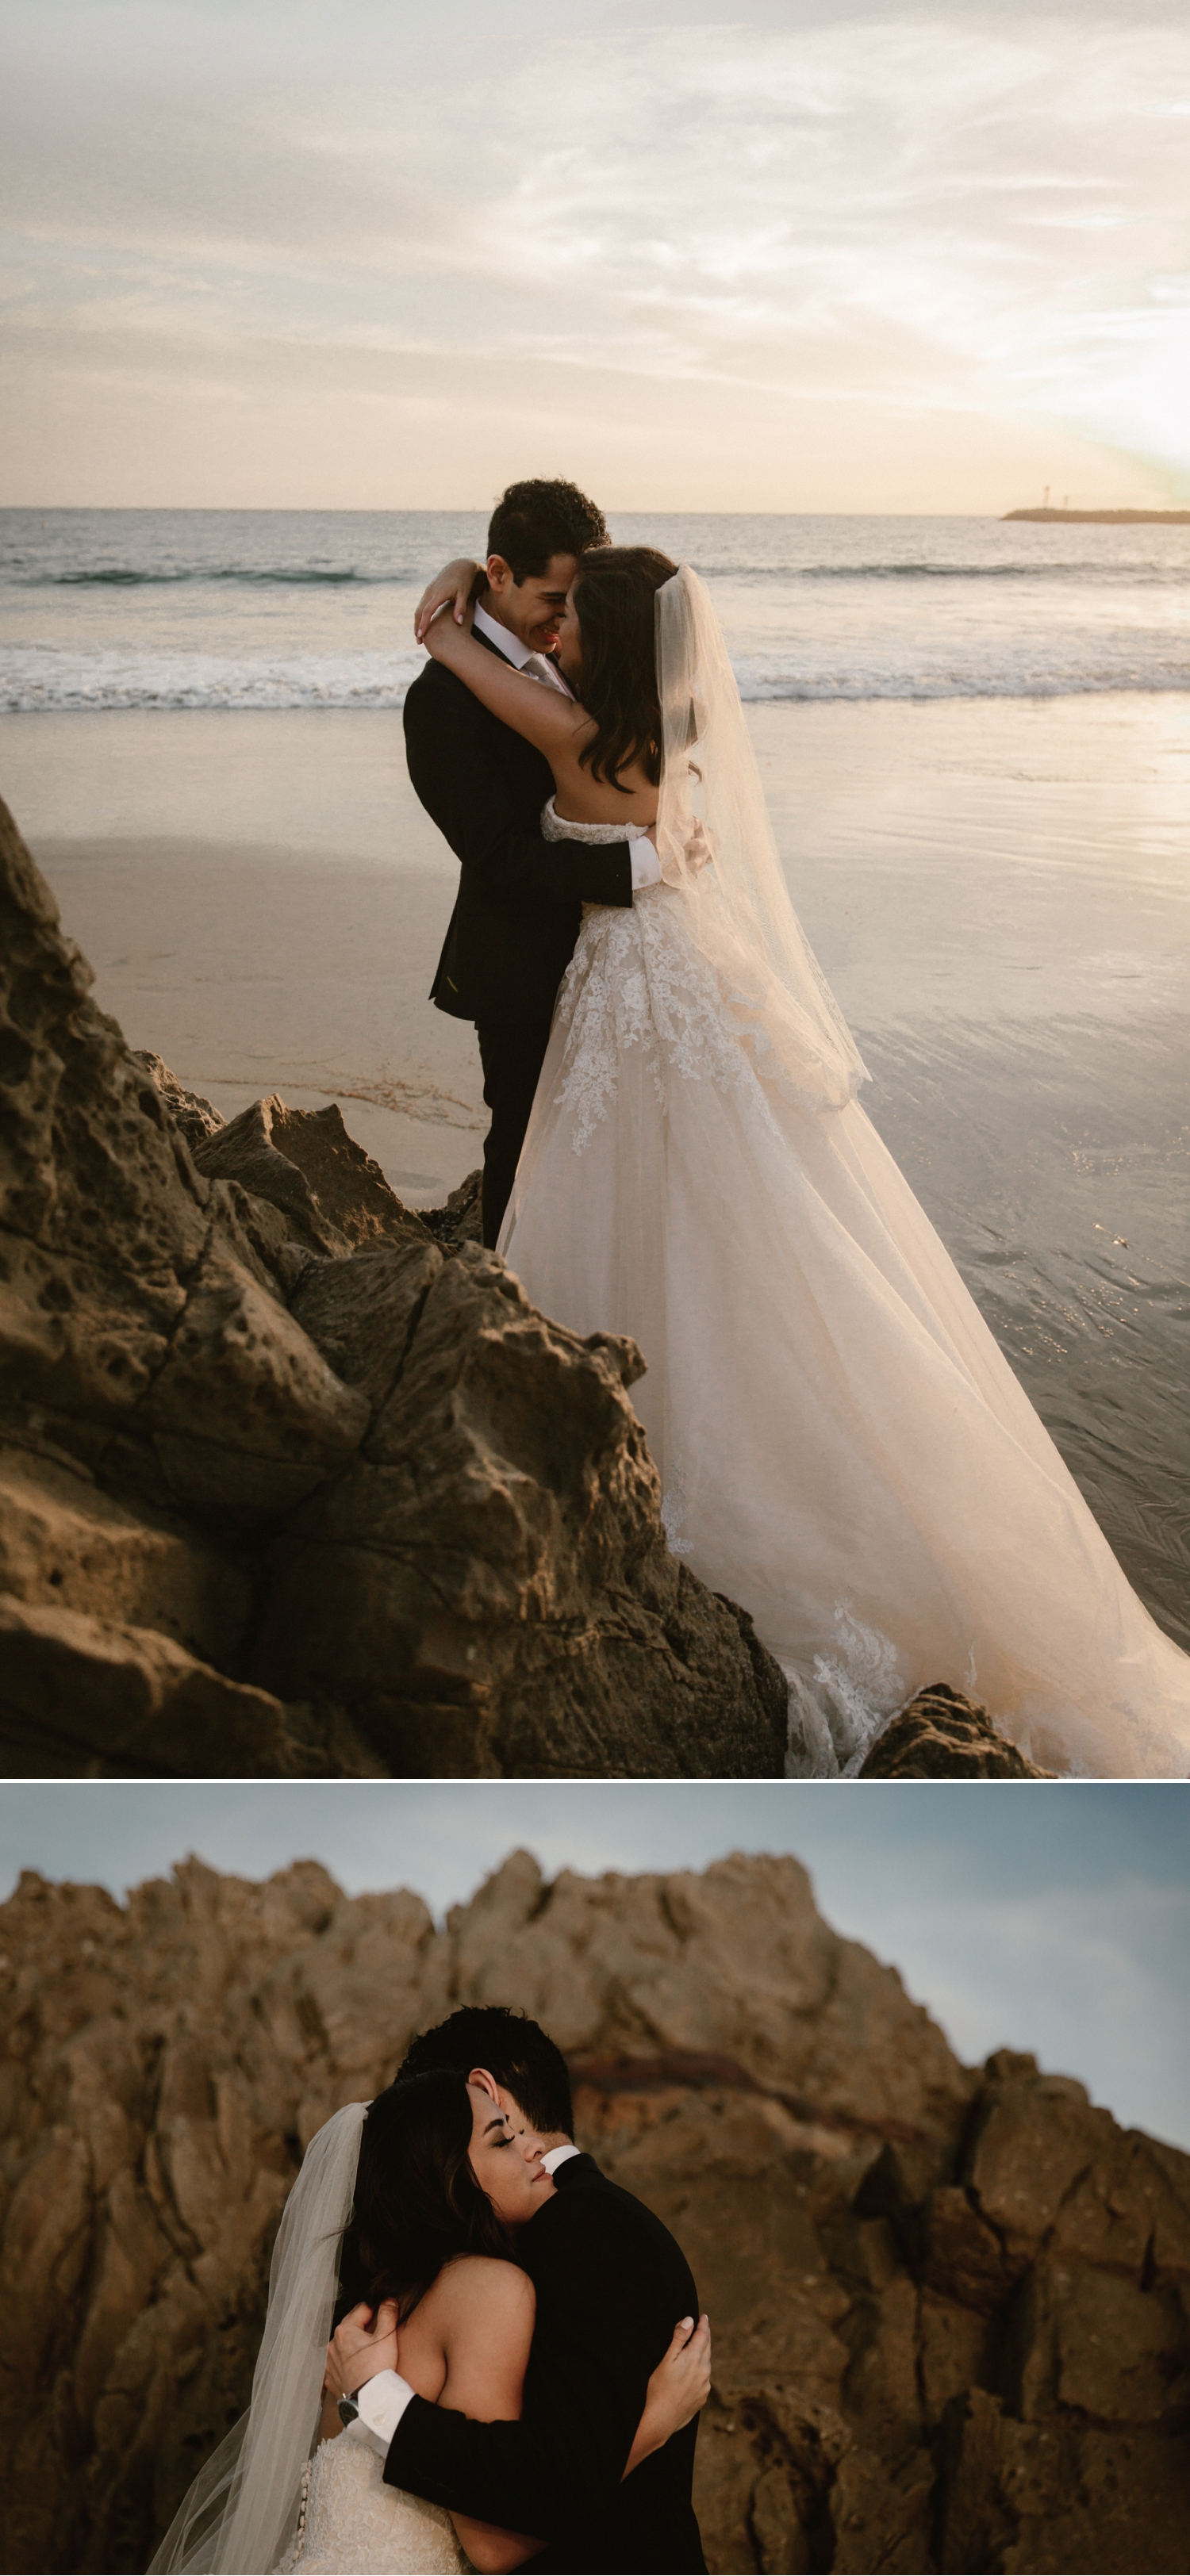 Bride and groom portraits at Inspiration Point in Corona del Mar by Paige Nelson